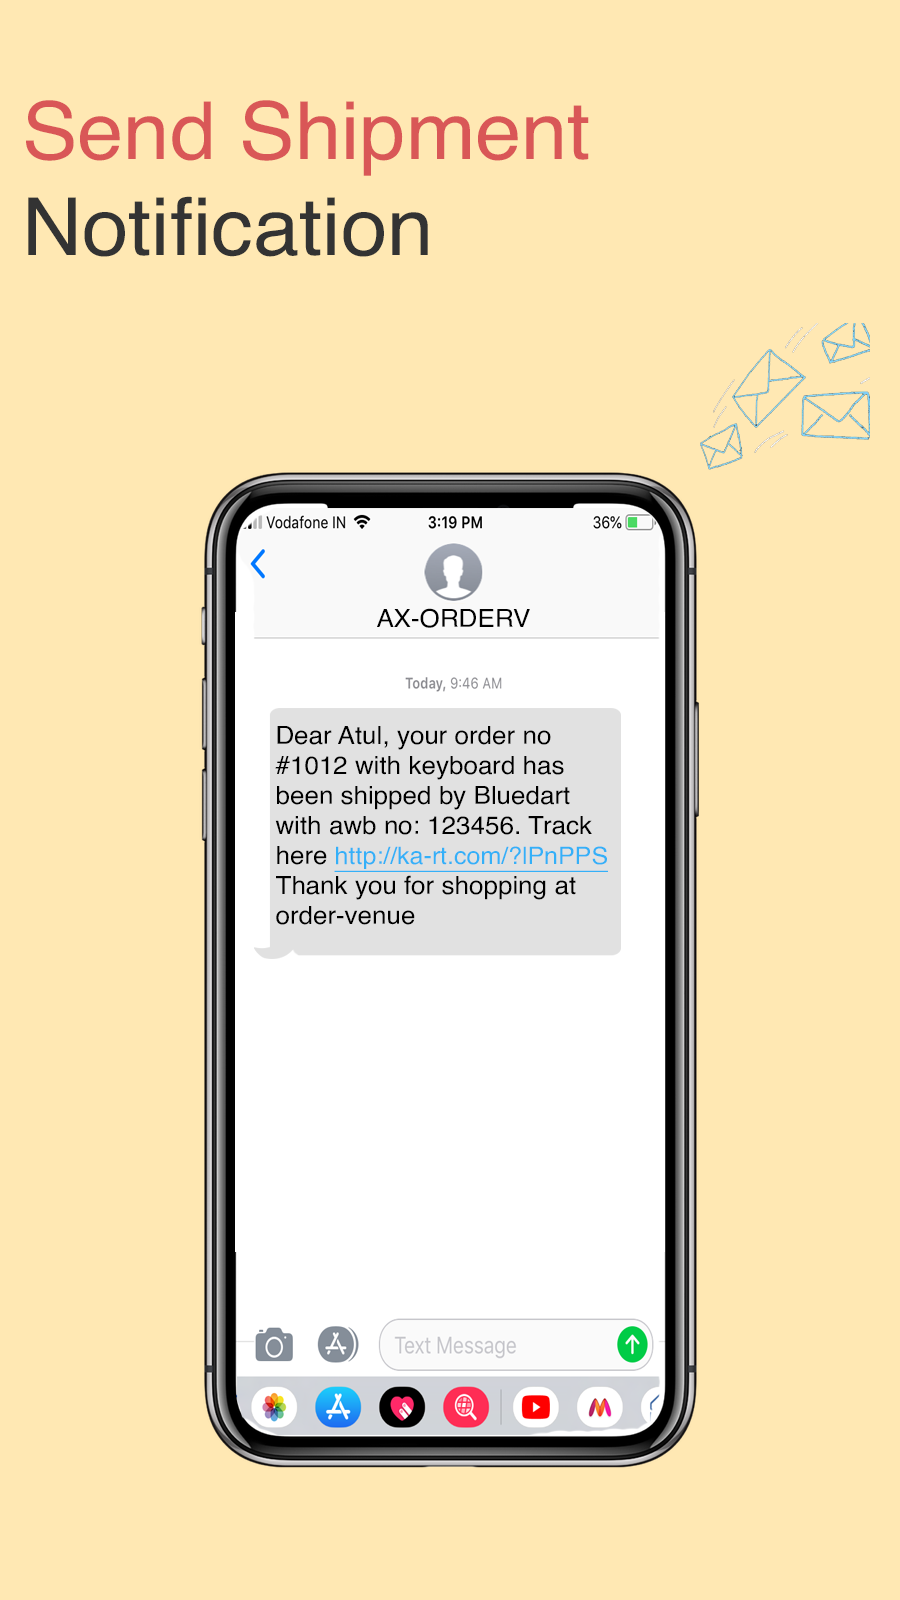 SMS Shipment Notifications